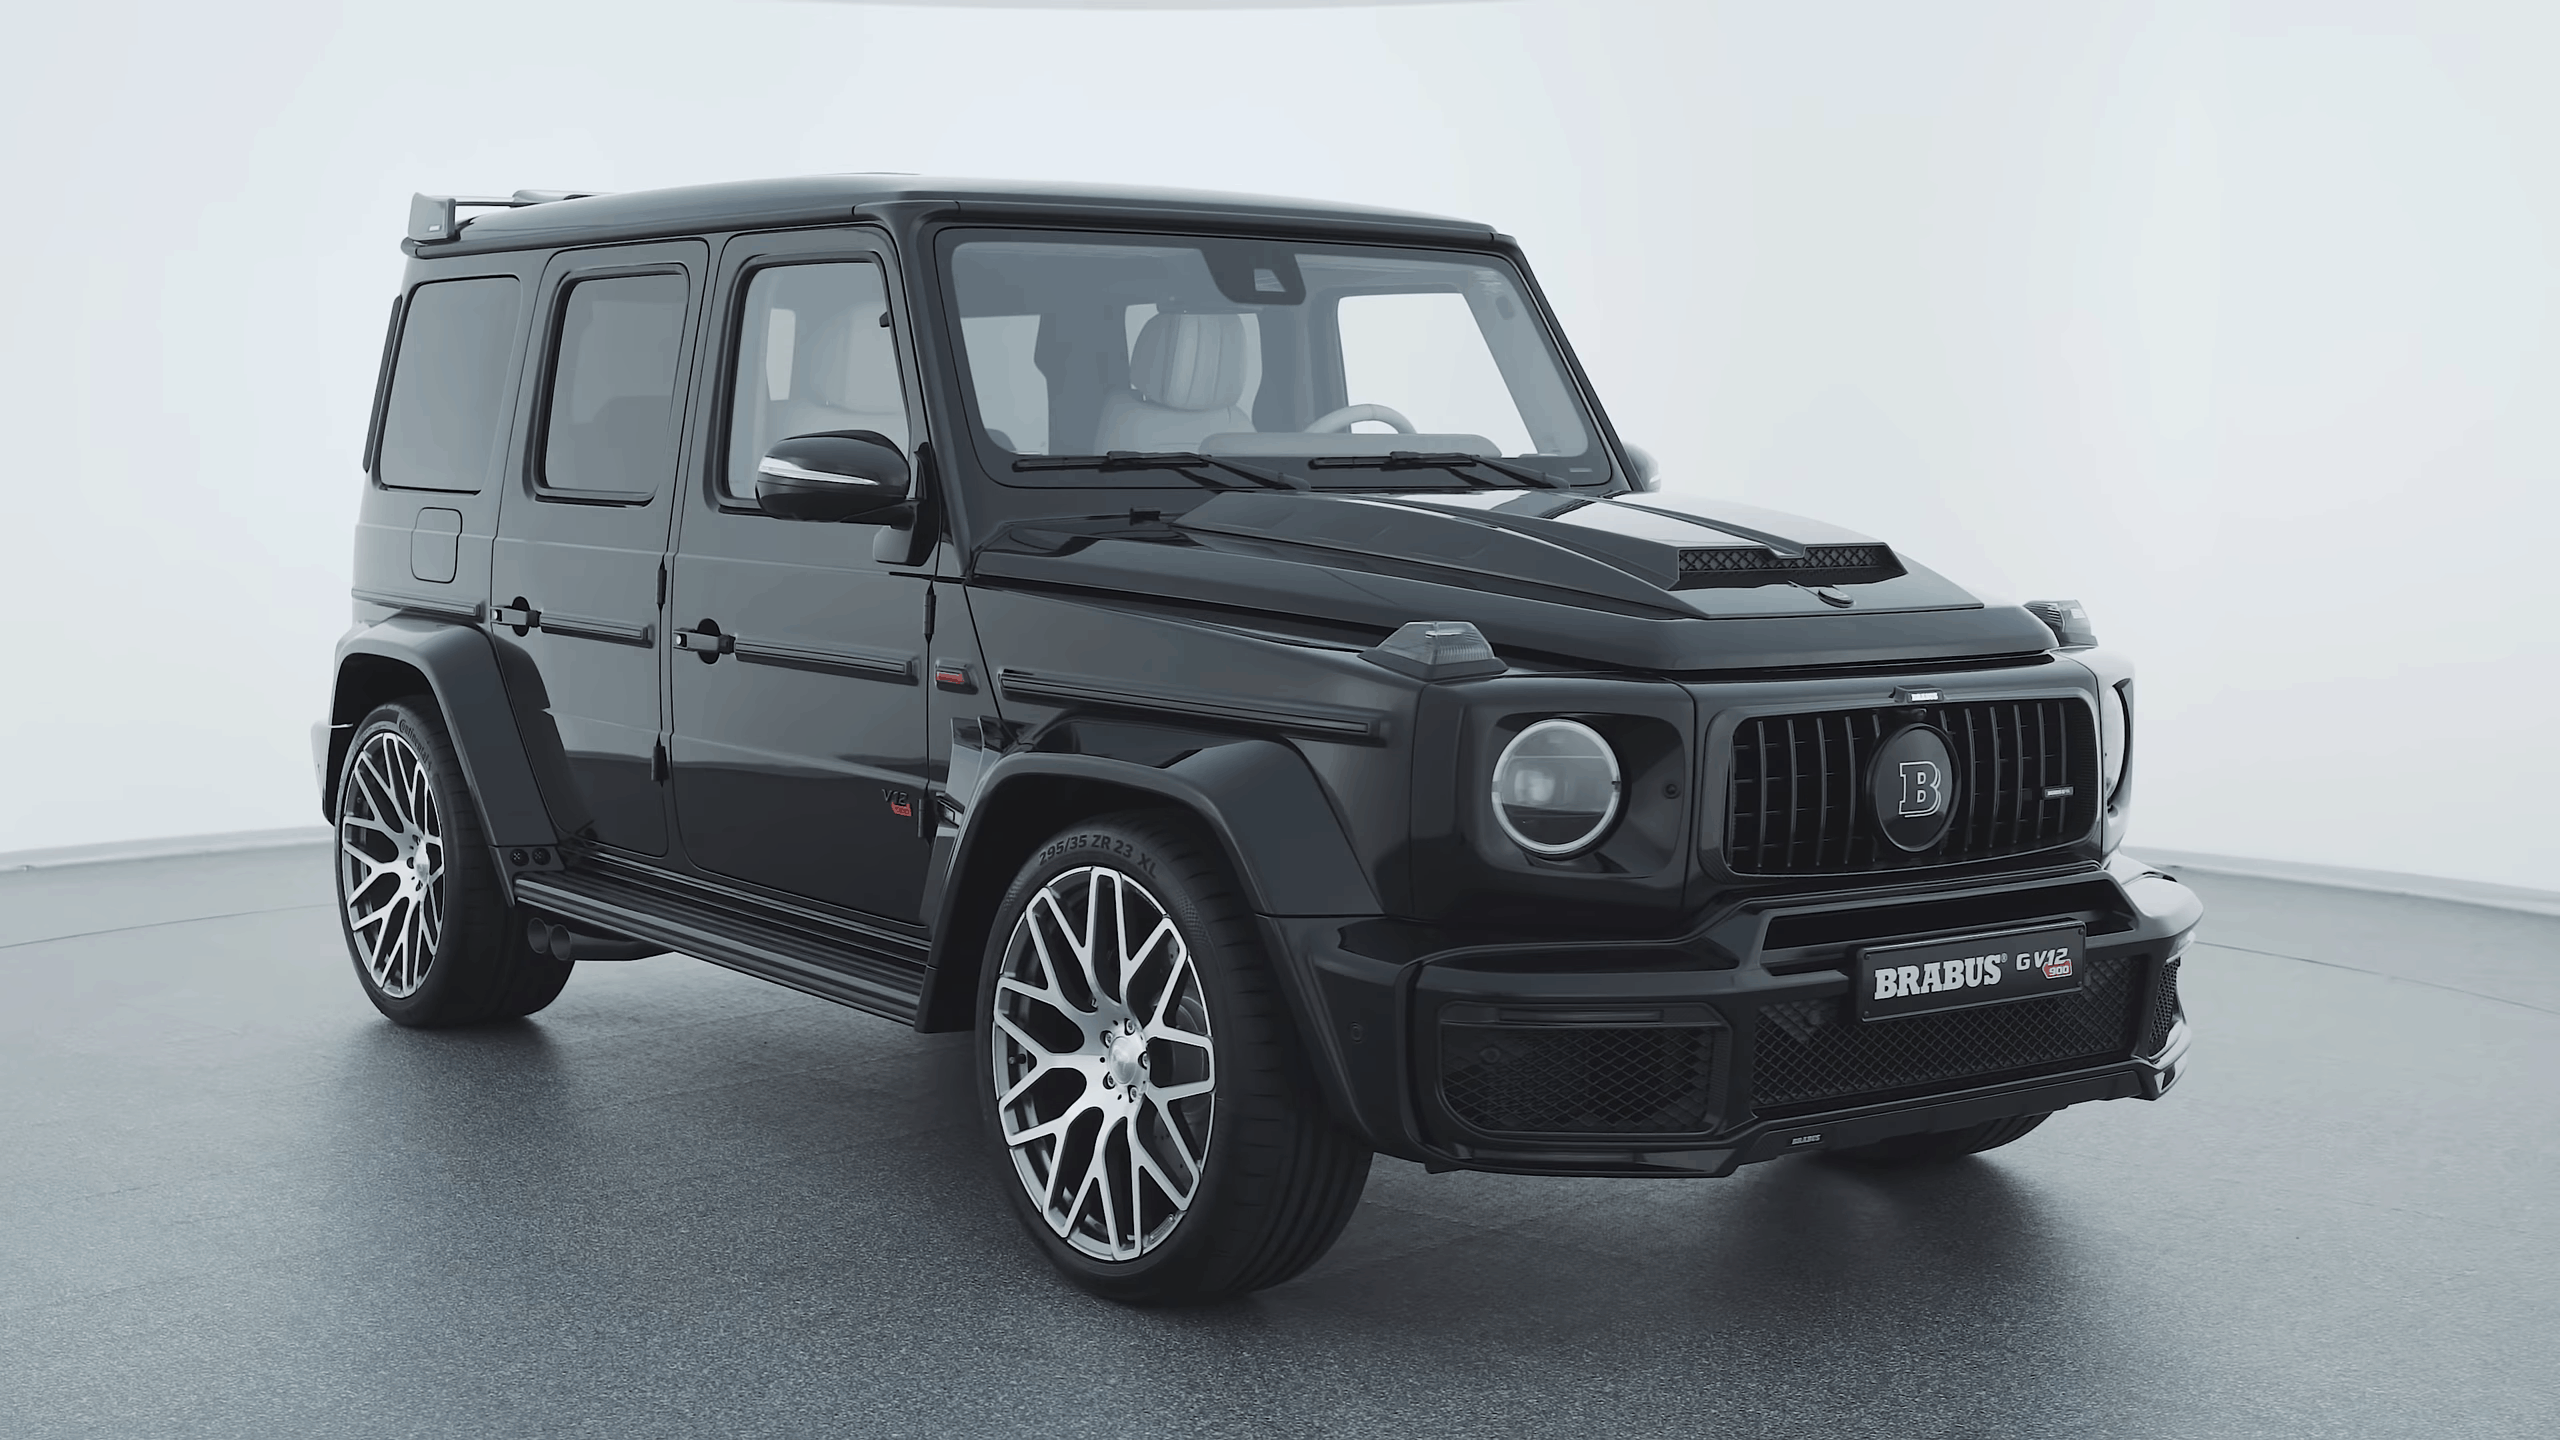 The world's strongest SUV - BRABUS G V12